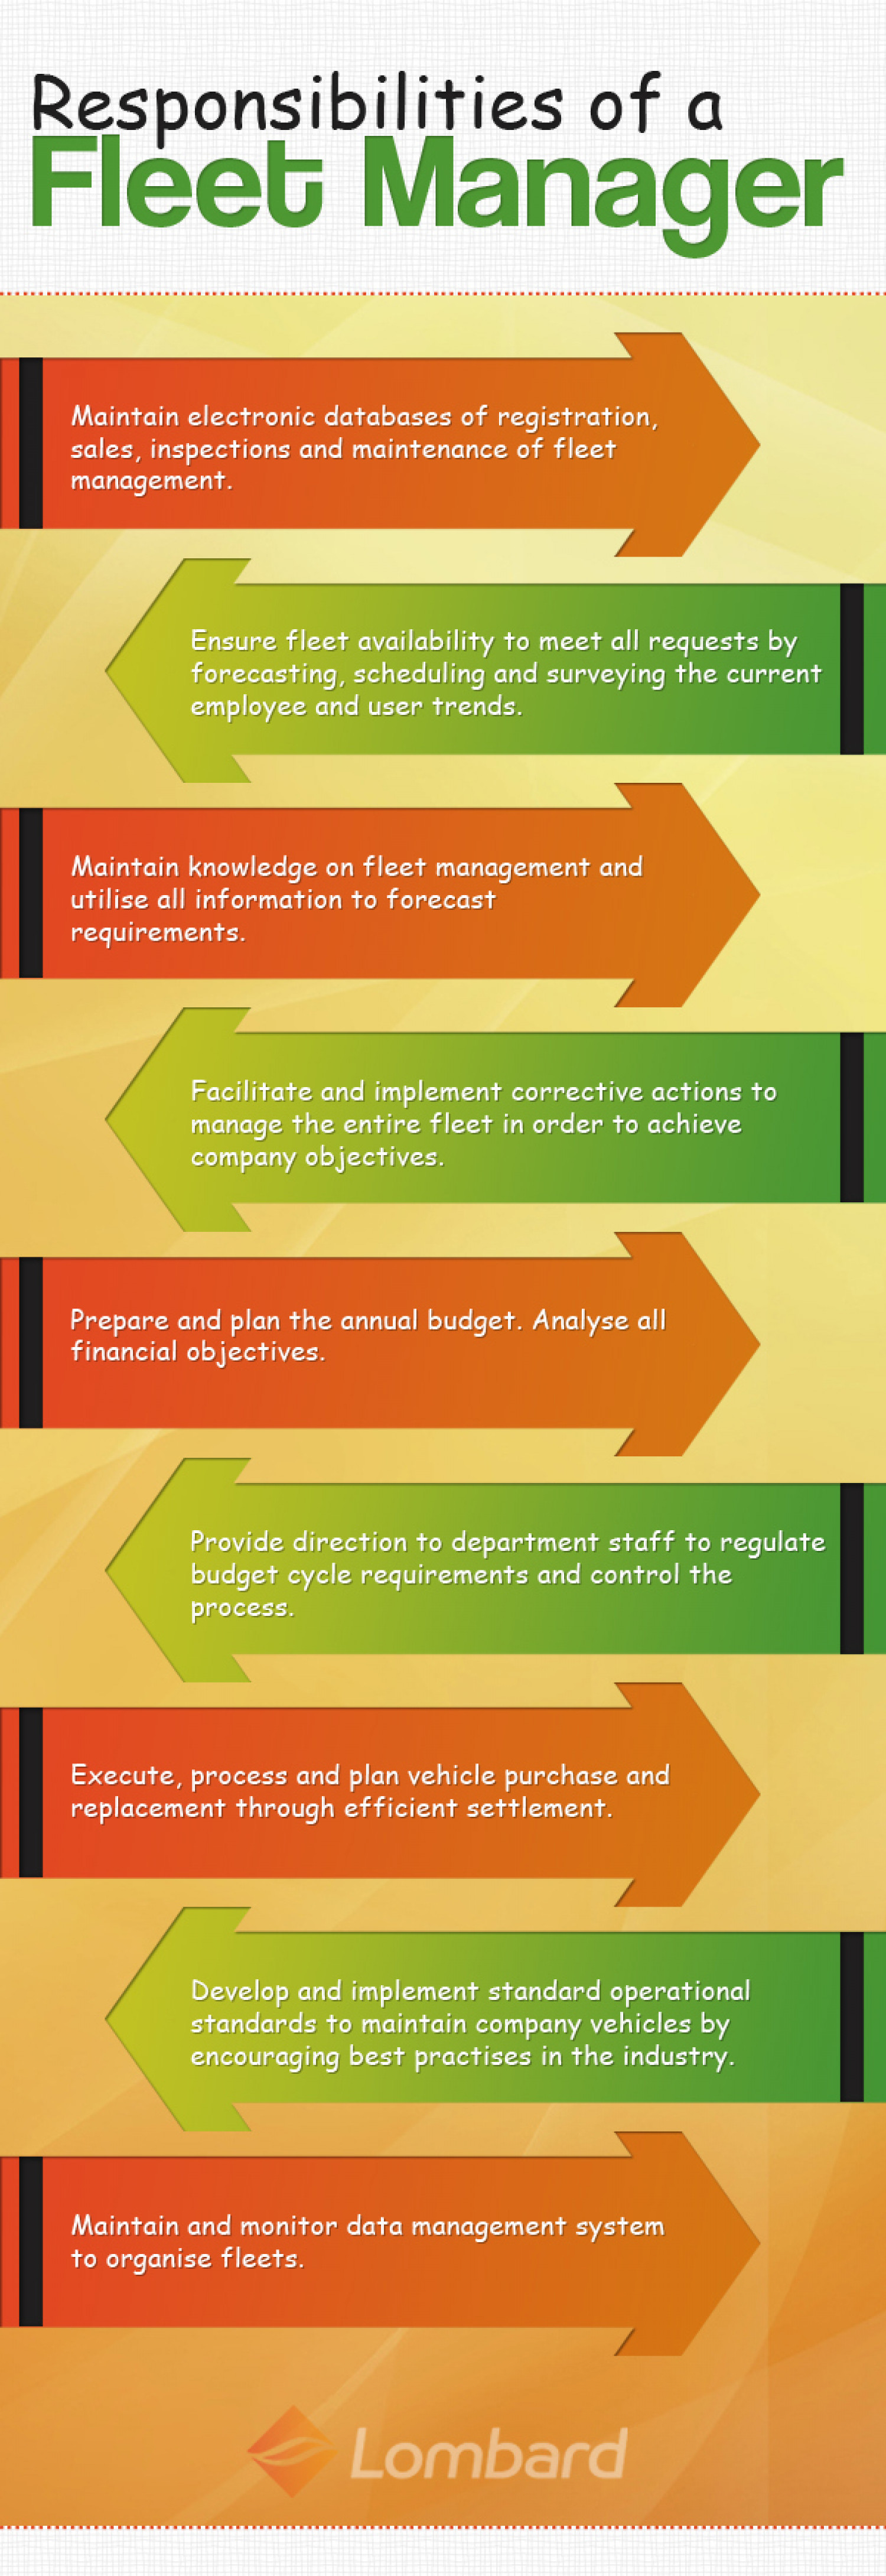 Responsibilities of a Fleet Manager Infographic